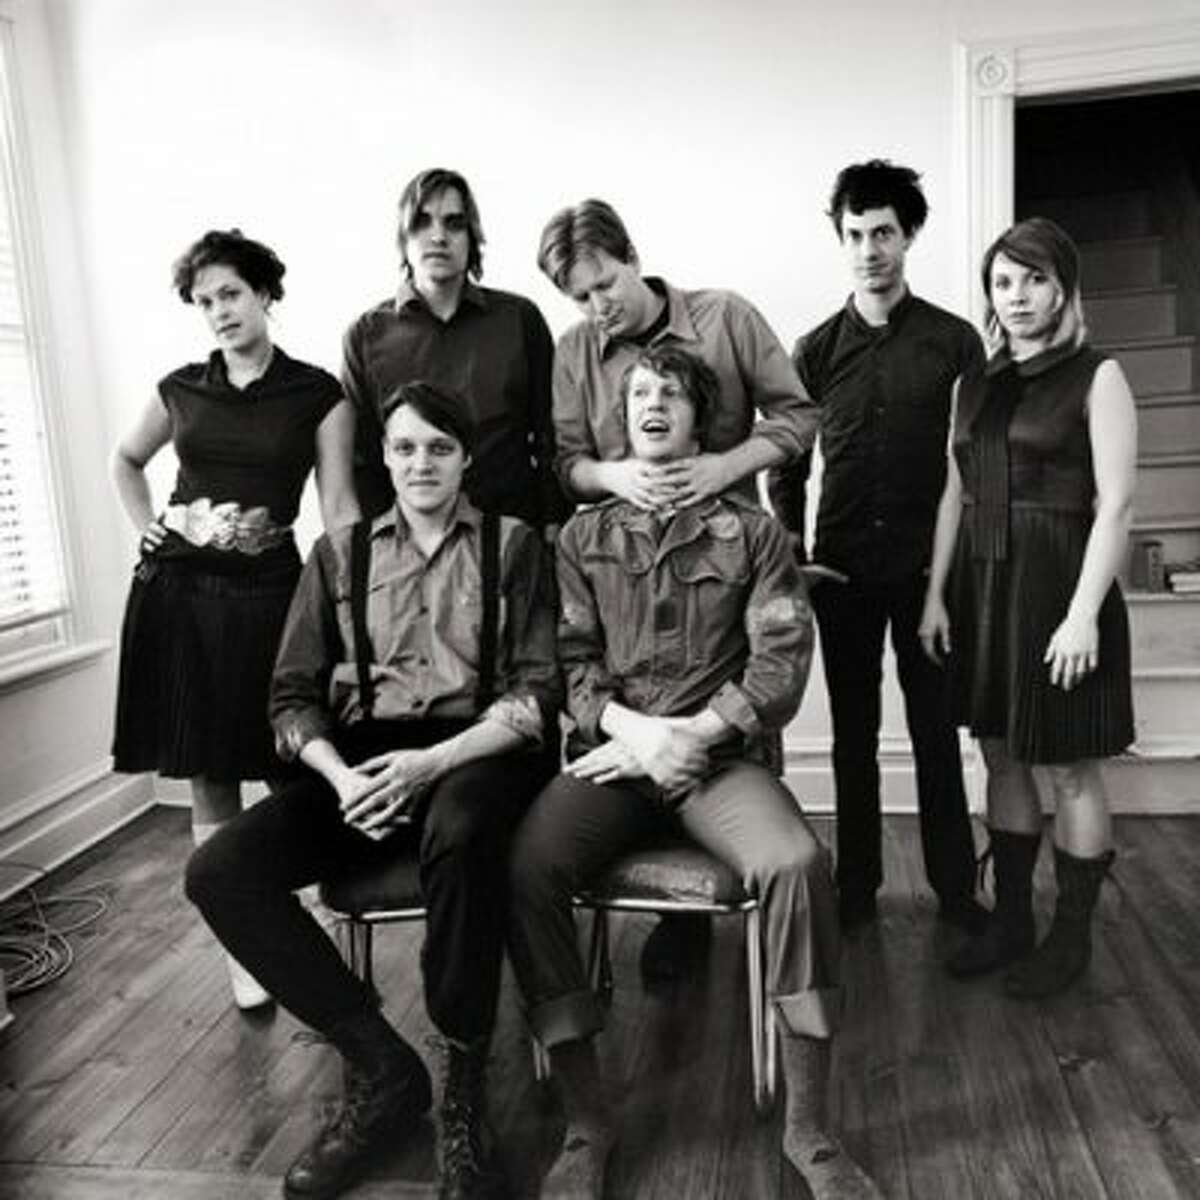 The Arcade Fire played Mary Jane's Fat Cat early in the band's touring career, back in February 2005. Over half a decade later they would headline the Cynthia Woods Mitchell Pavilion. (Merge)